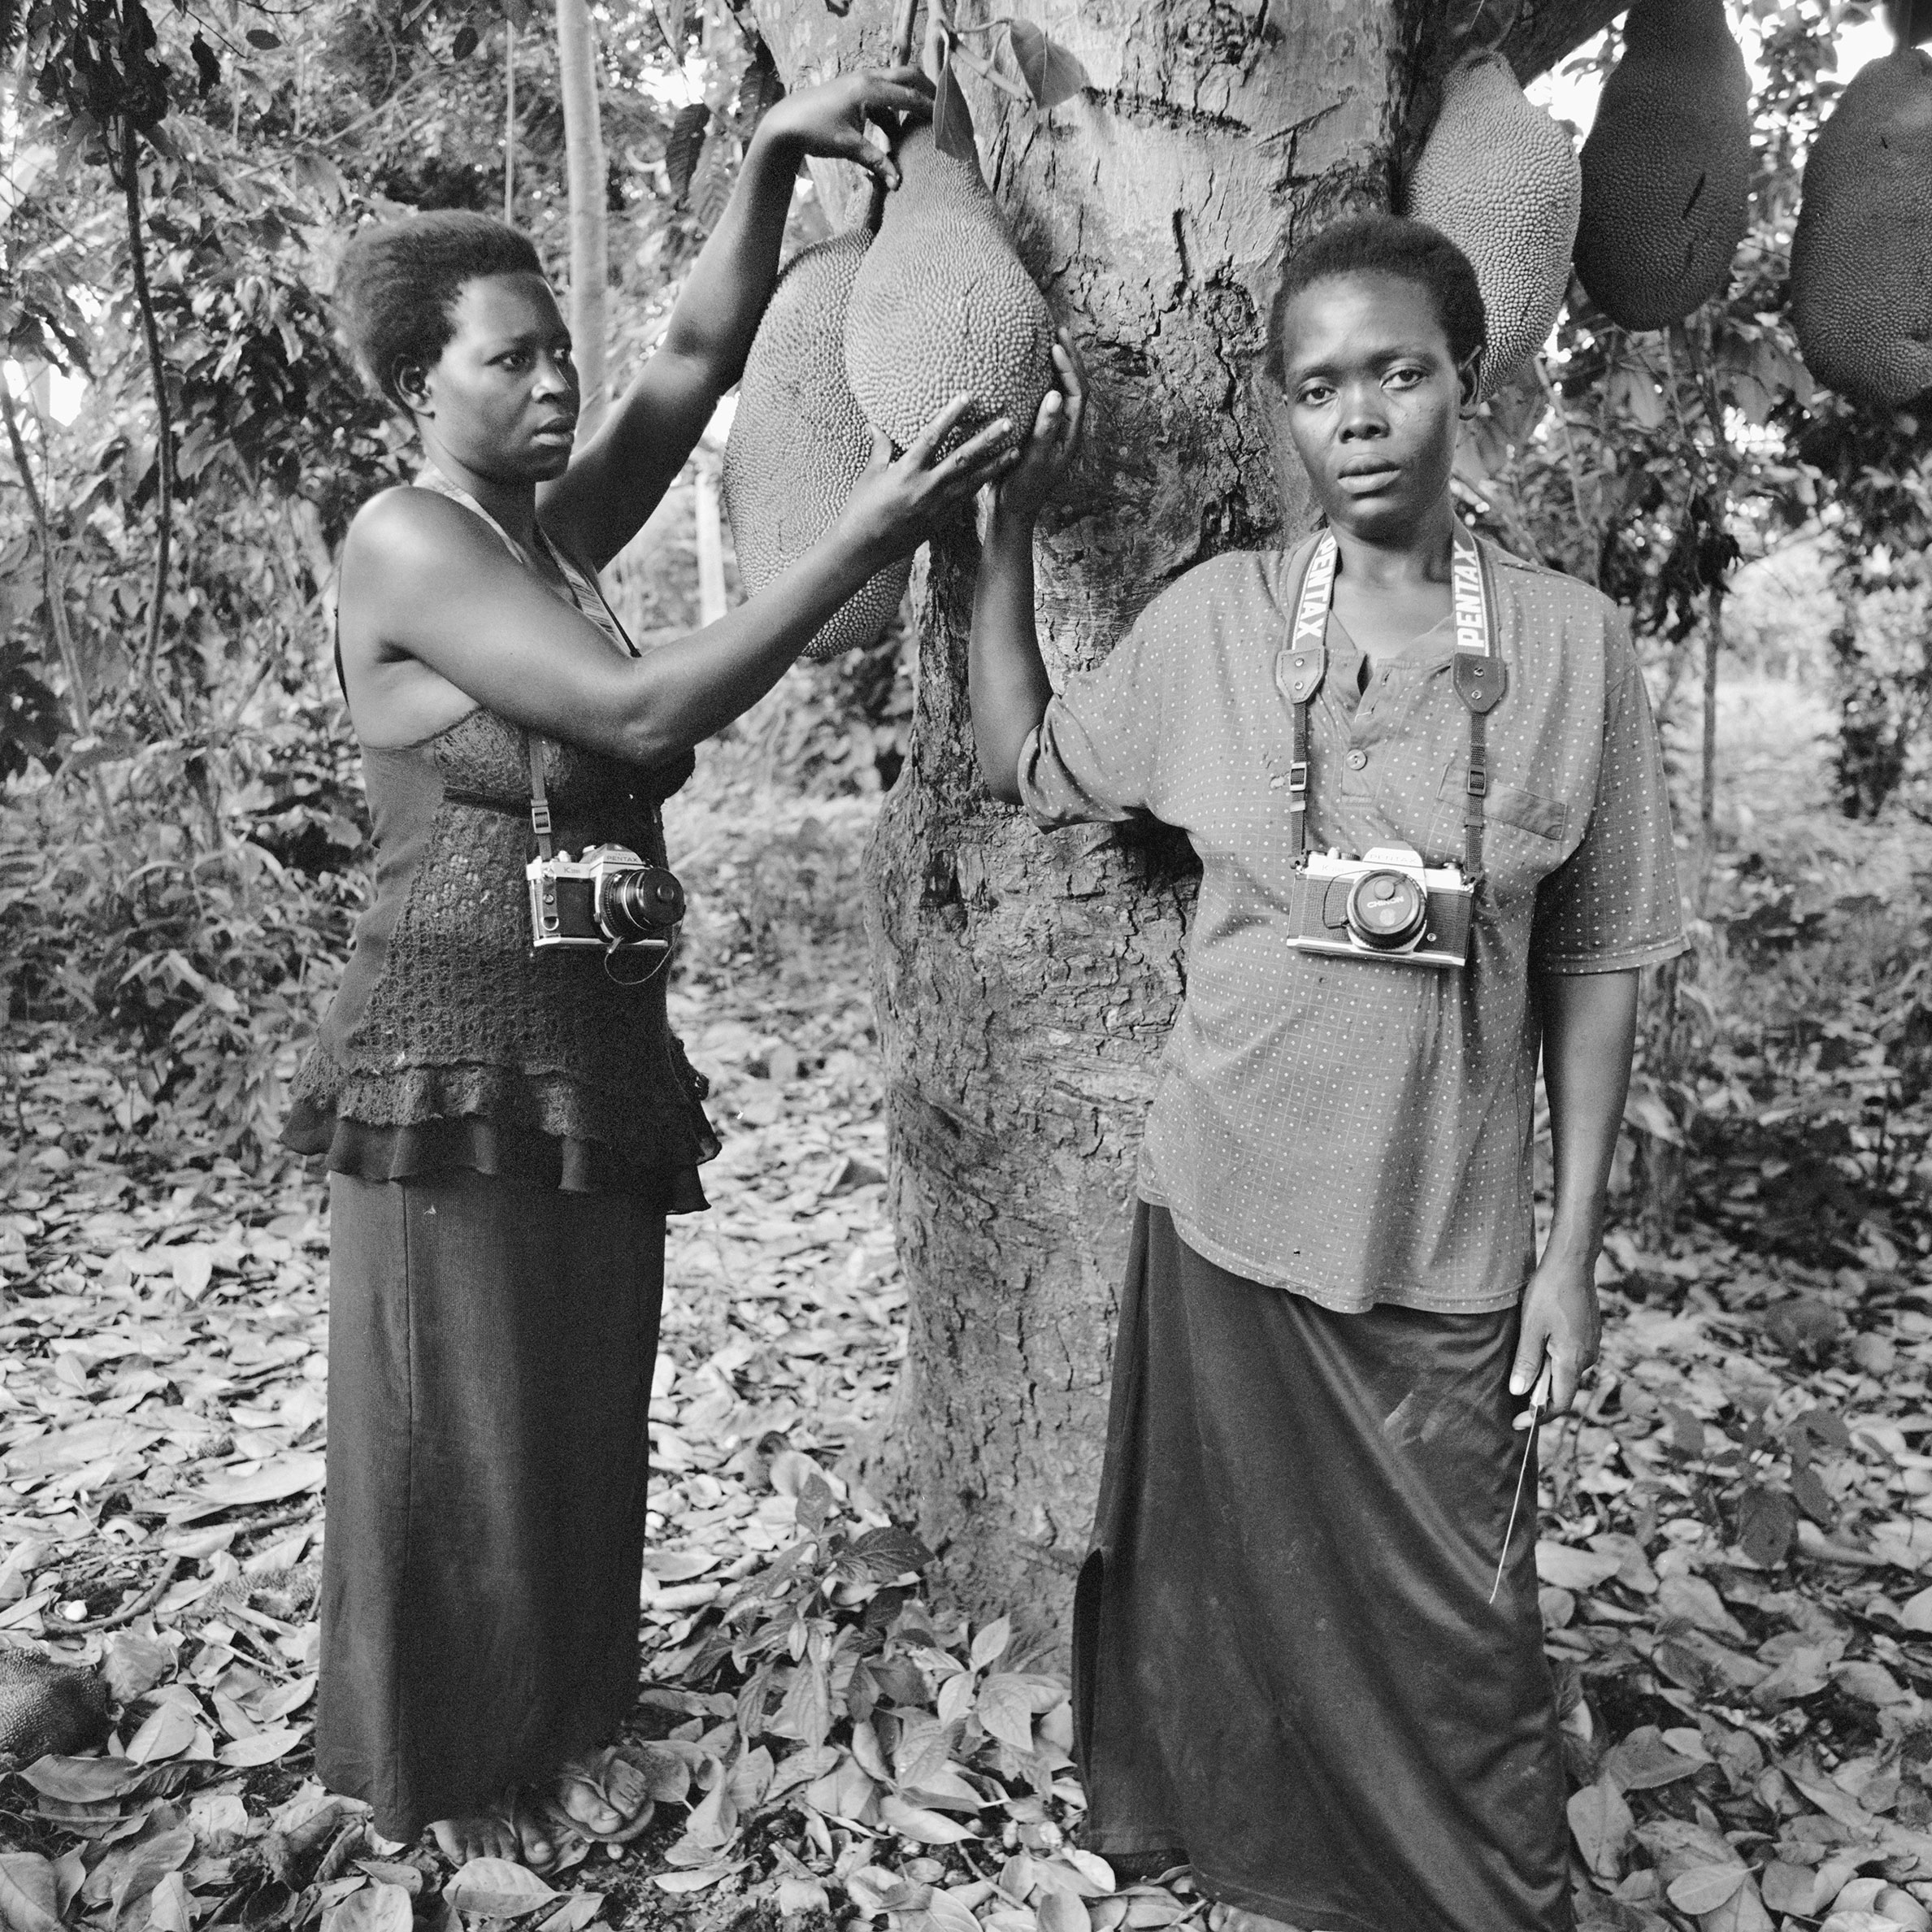 """Nalubowa Annet and Nassali Marriam along the back path leading to their gardens, posed under a """"fene"""" (jackfruit) tree.   These two women are close companions through life. They are next door neighbors, each with six children, and are raising their families as if related. Nassali Marriam is a major contributing member to a fair trade coffee cooperative, and Annet Nalubowa manages a small dairy business."""